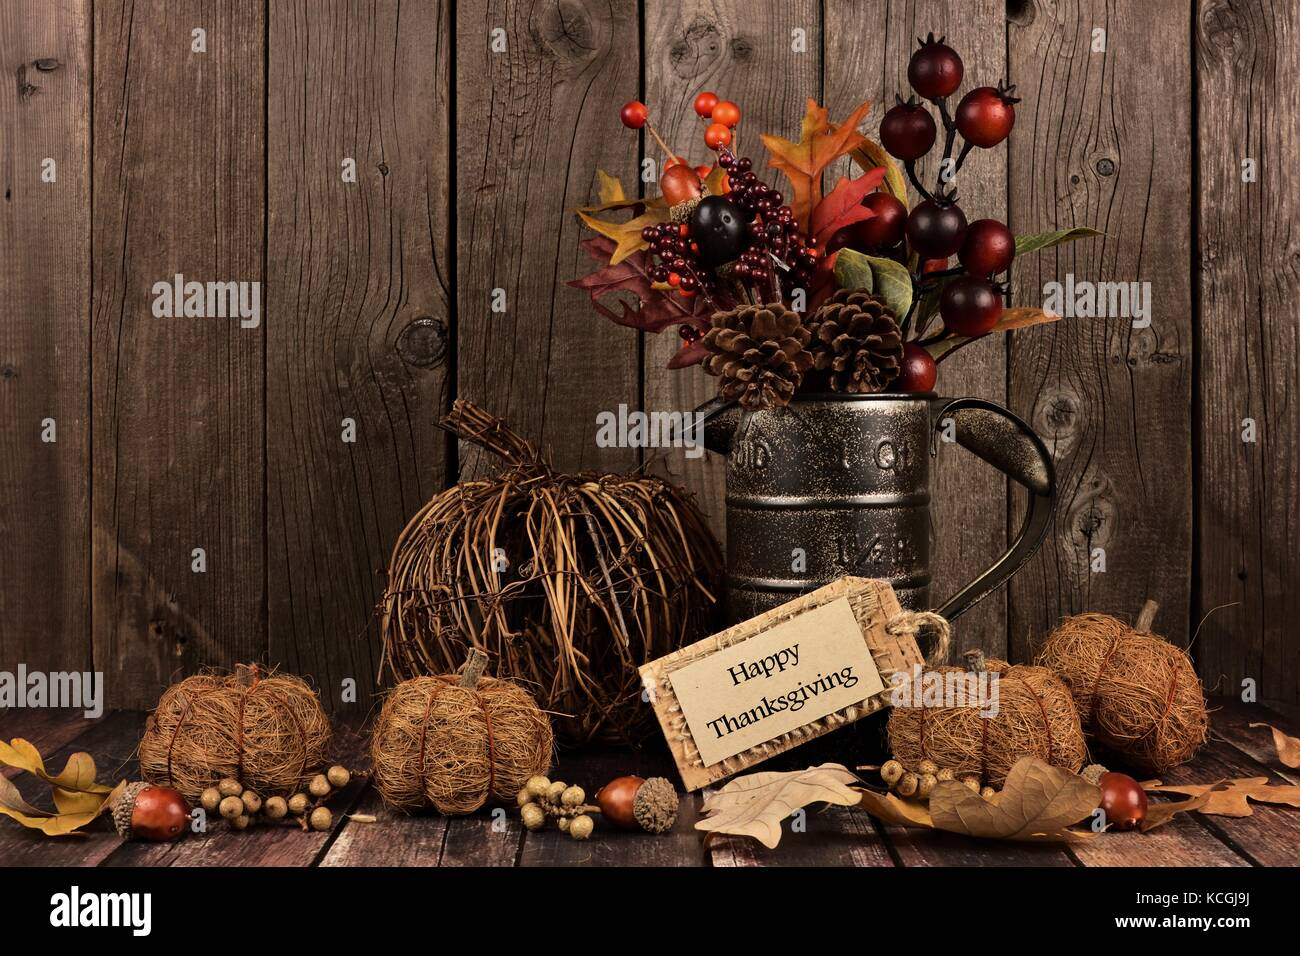 Happy Thanksgiving Tag, Rustic Pumpkins And Autumn Home Decor With A Wood  Background